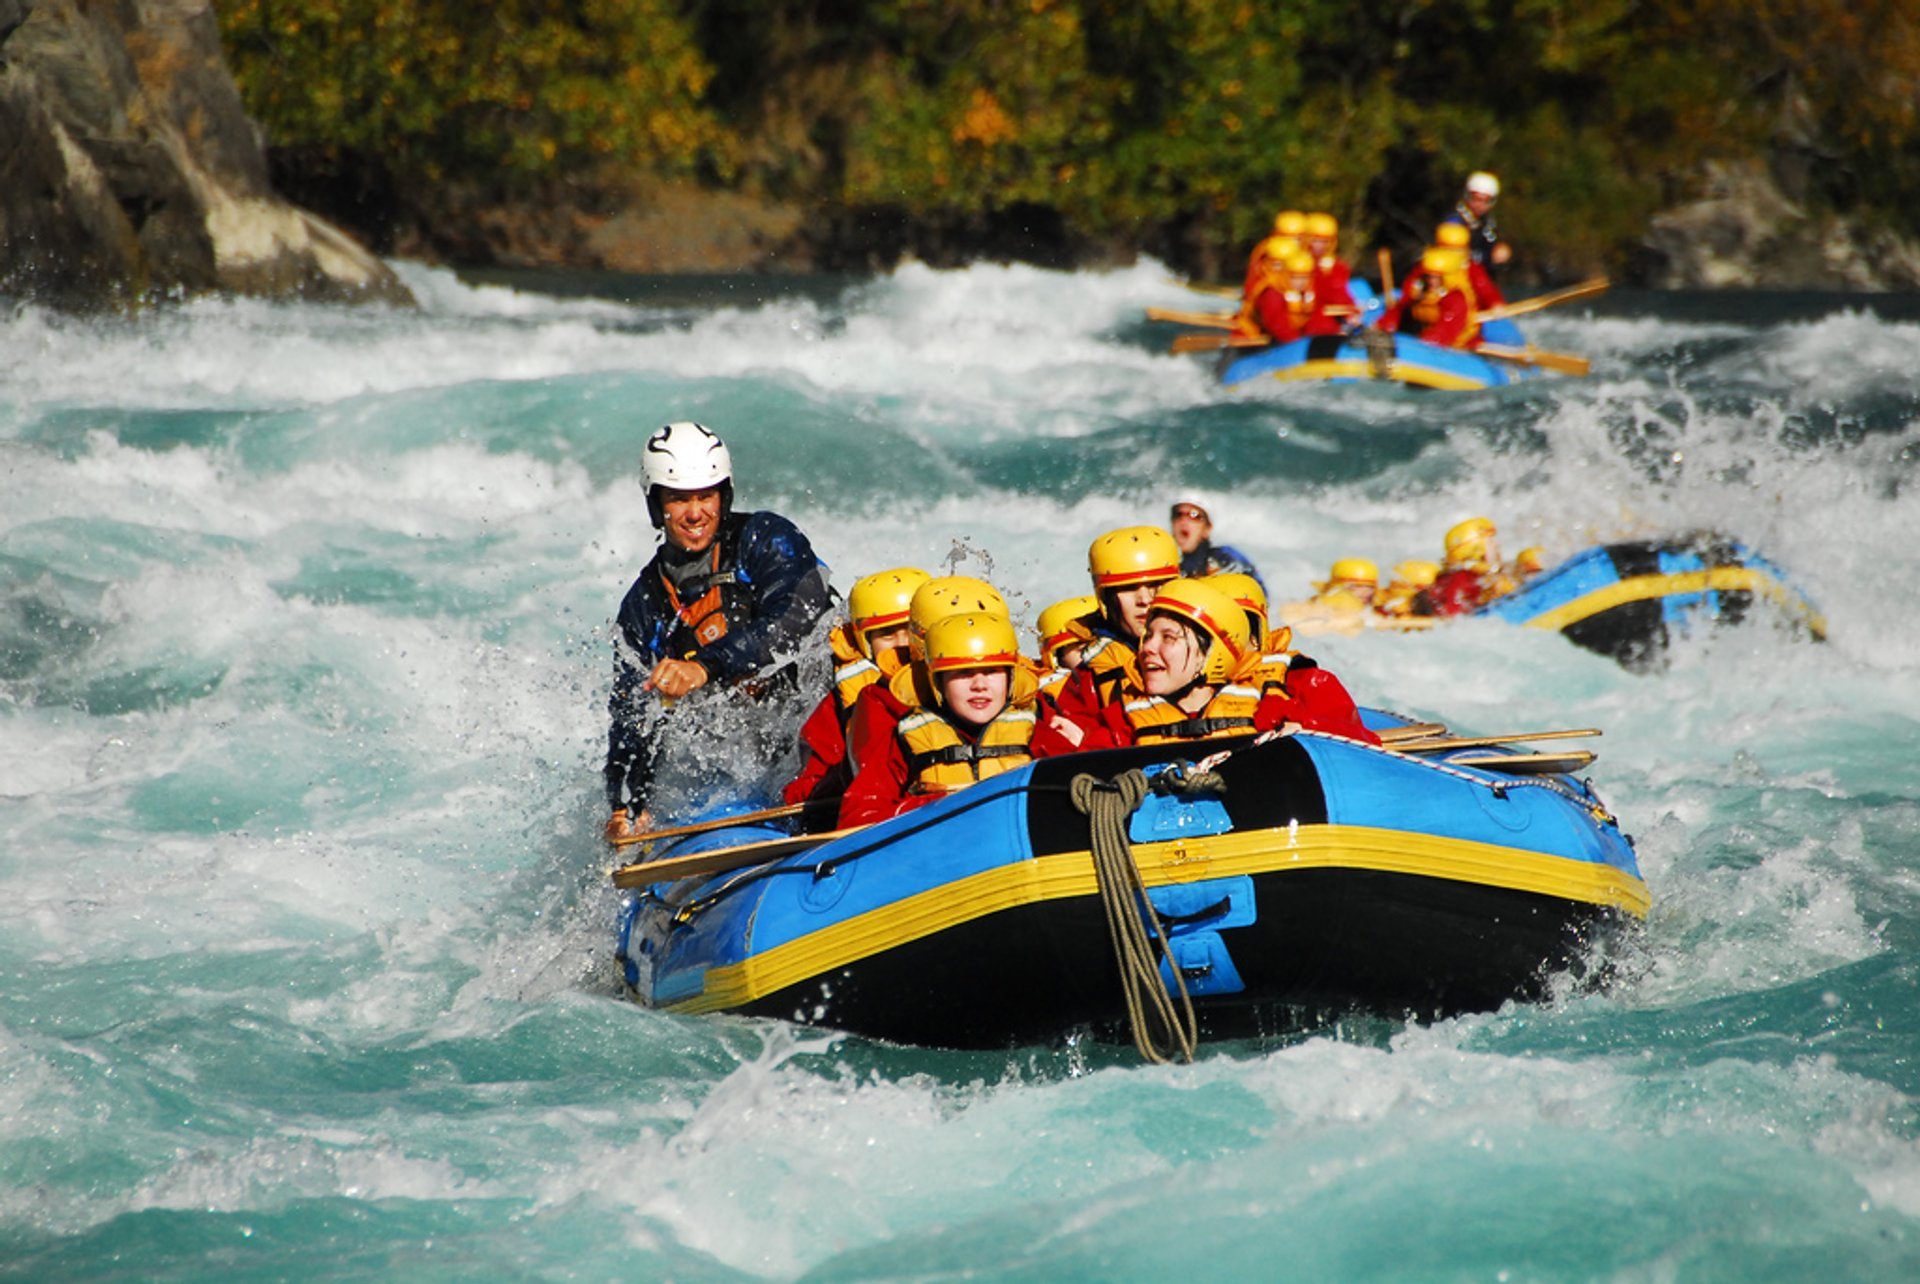 White Water Rafting in New Zealand 2019 - Best Time